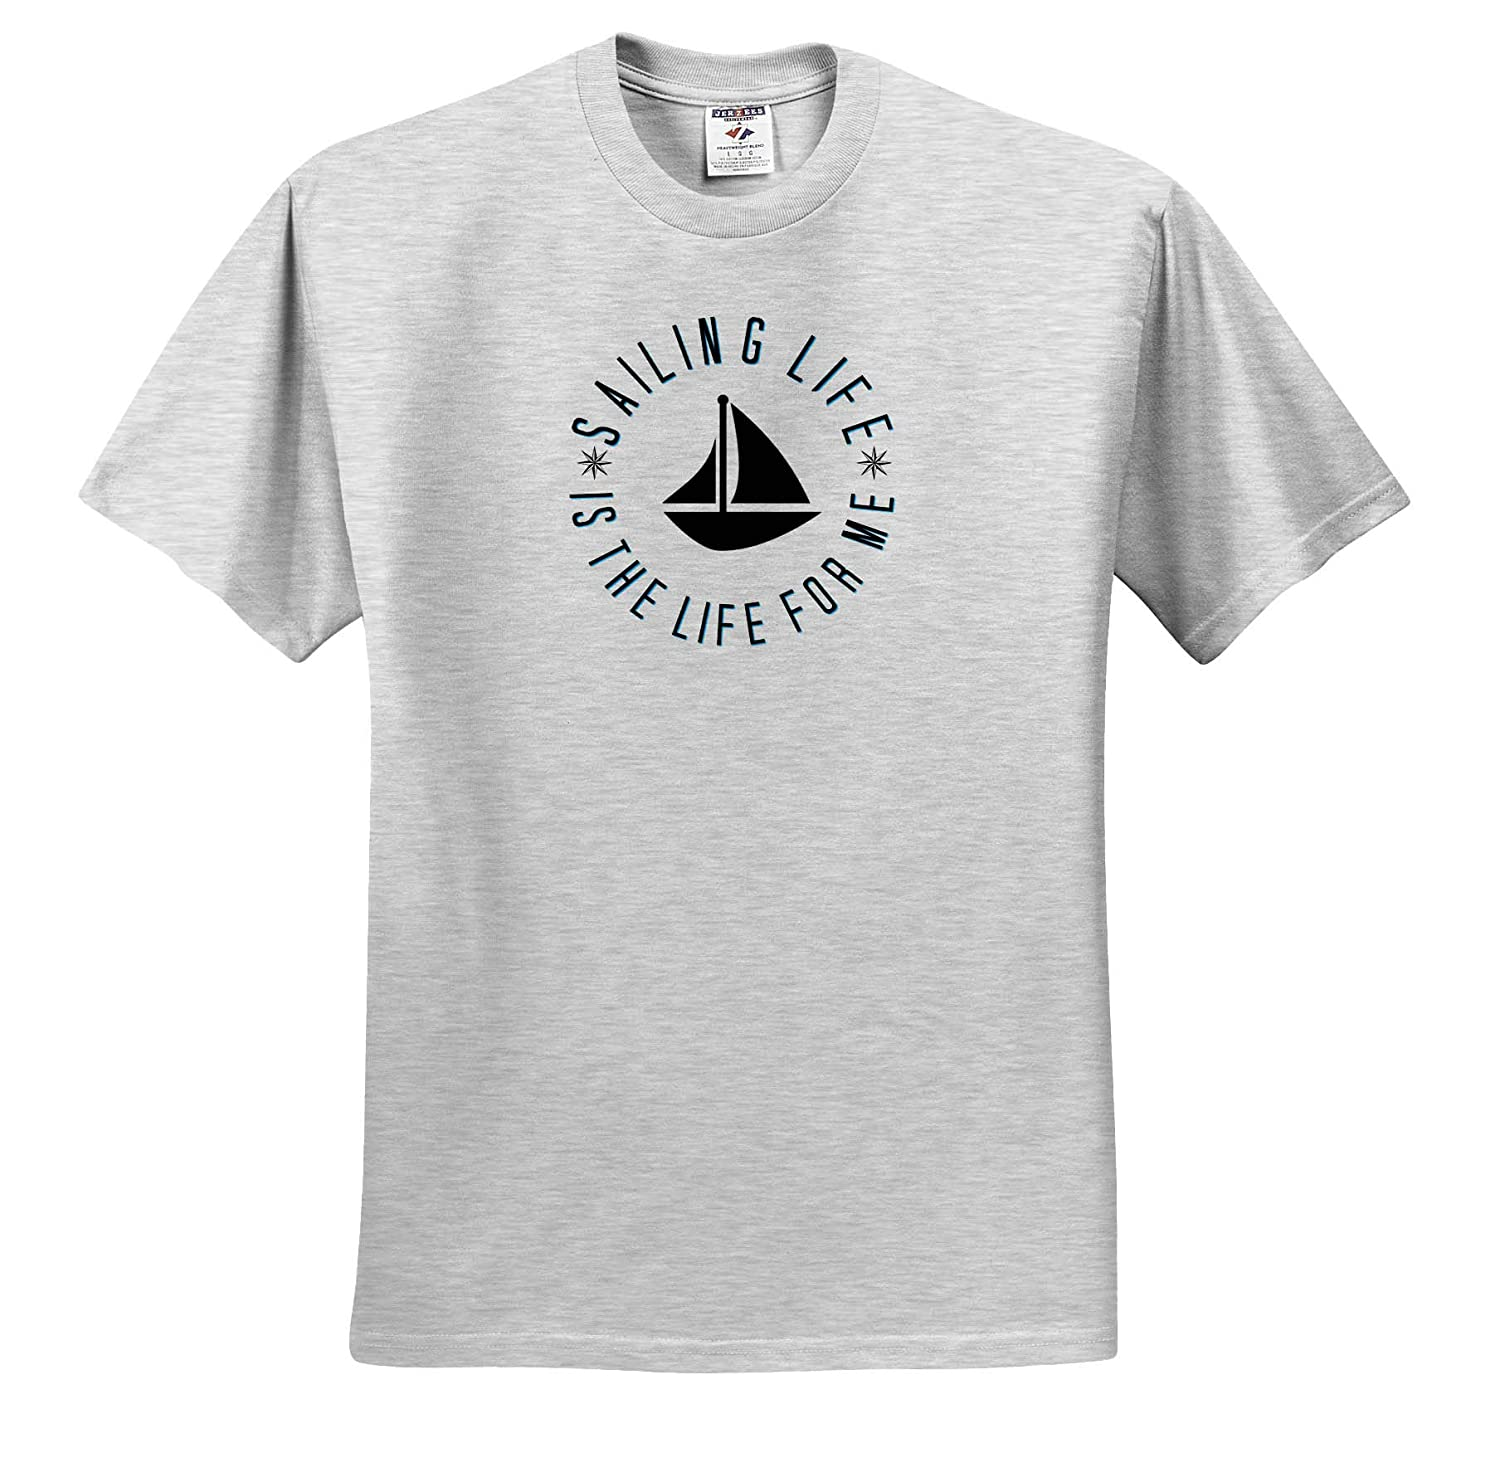 3dRose Carrie Merchant Image of Sailing Life is The Life for Me Adult T-Shirt XL ts/_309902